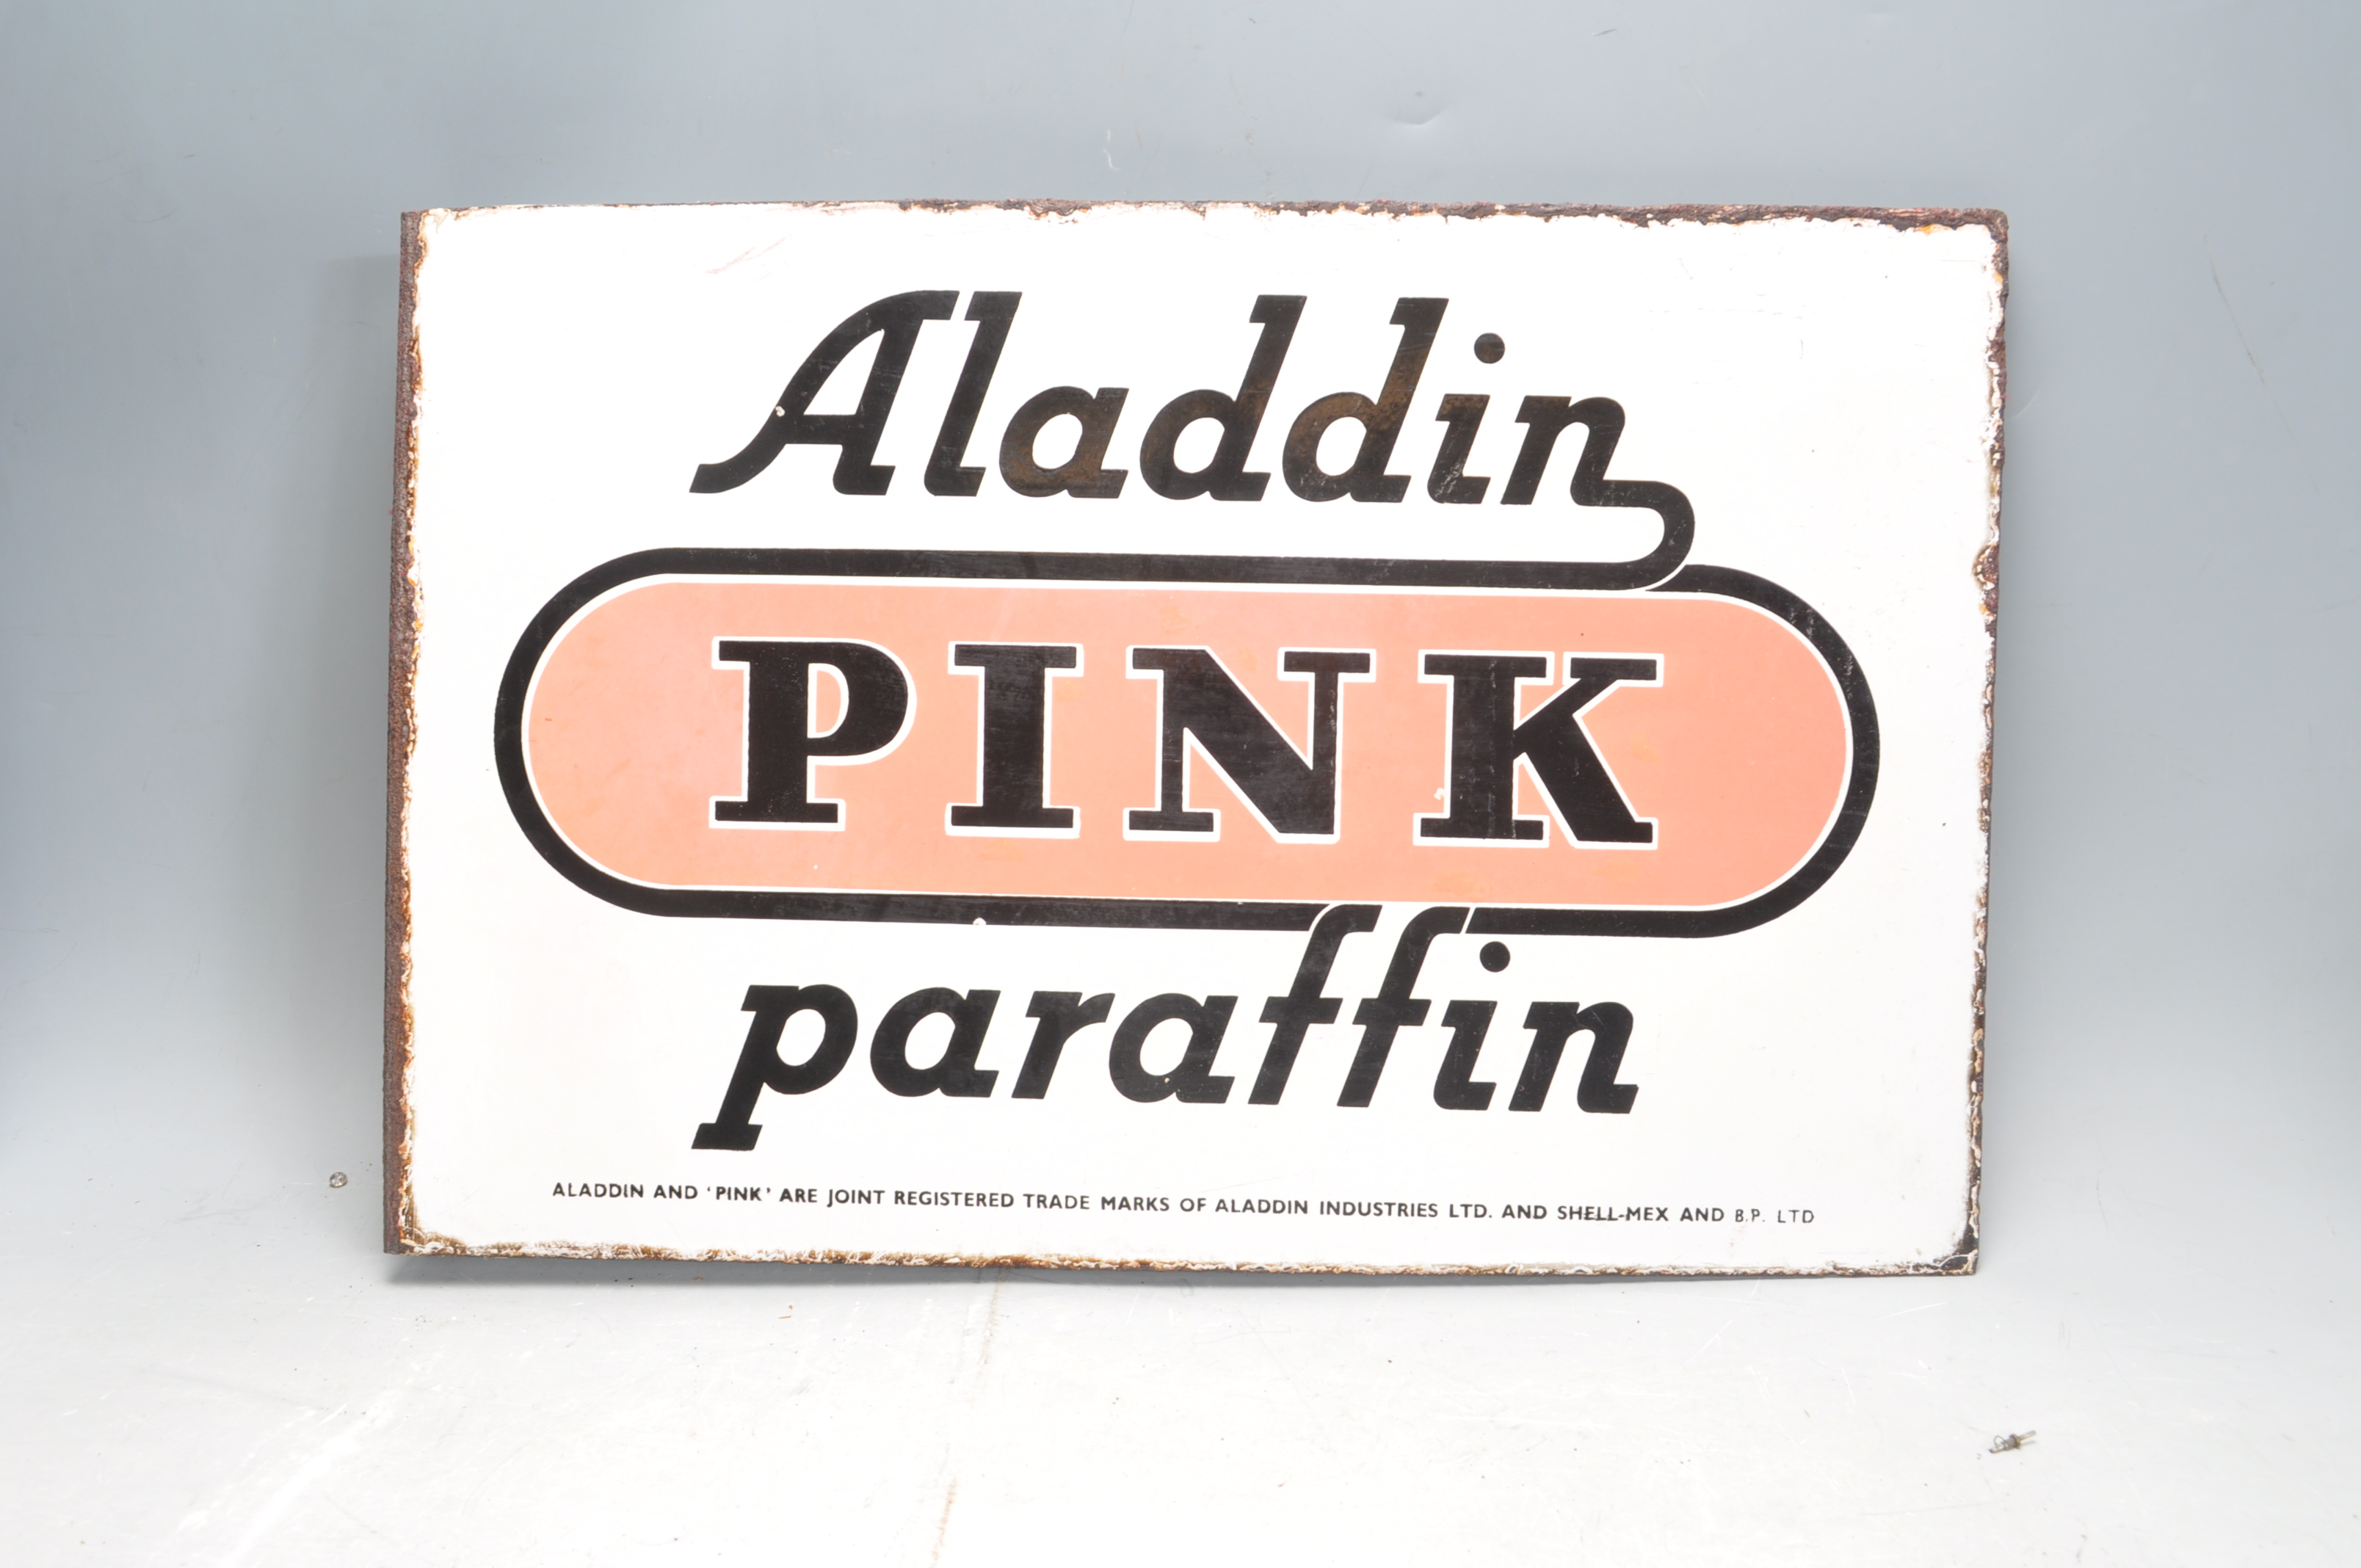 VINTAGE HABERDASHERY DOUBLE SIDED ENAMEL SIGN BY ALADDIN PINK PARAFFIN - Image 7 of 7